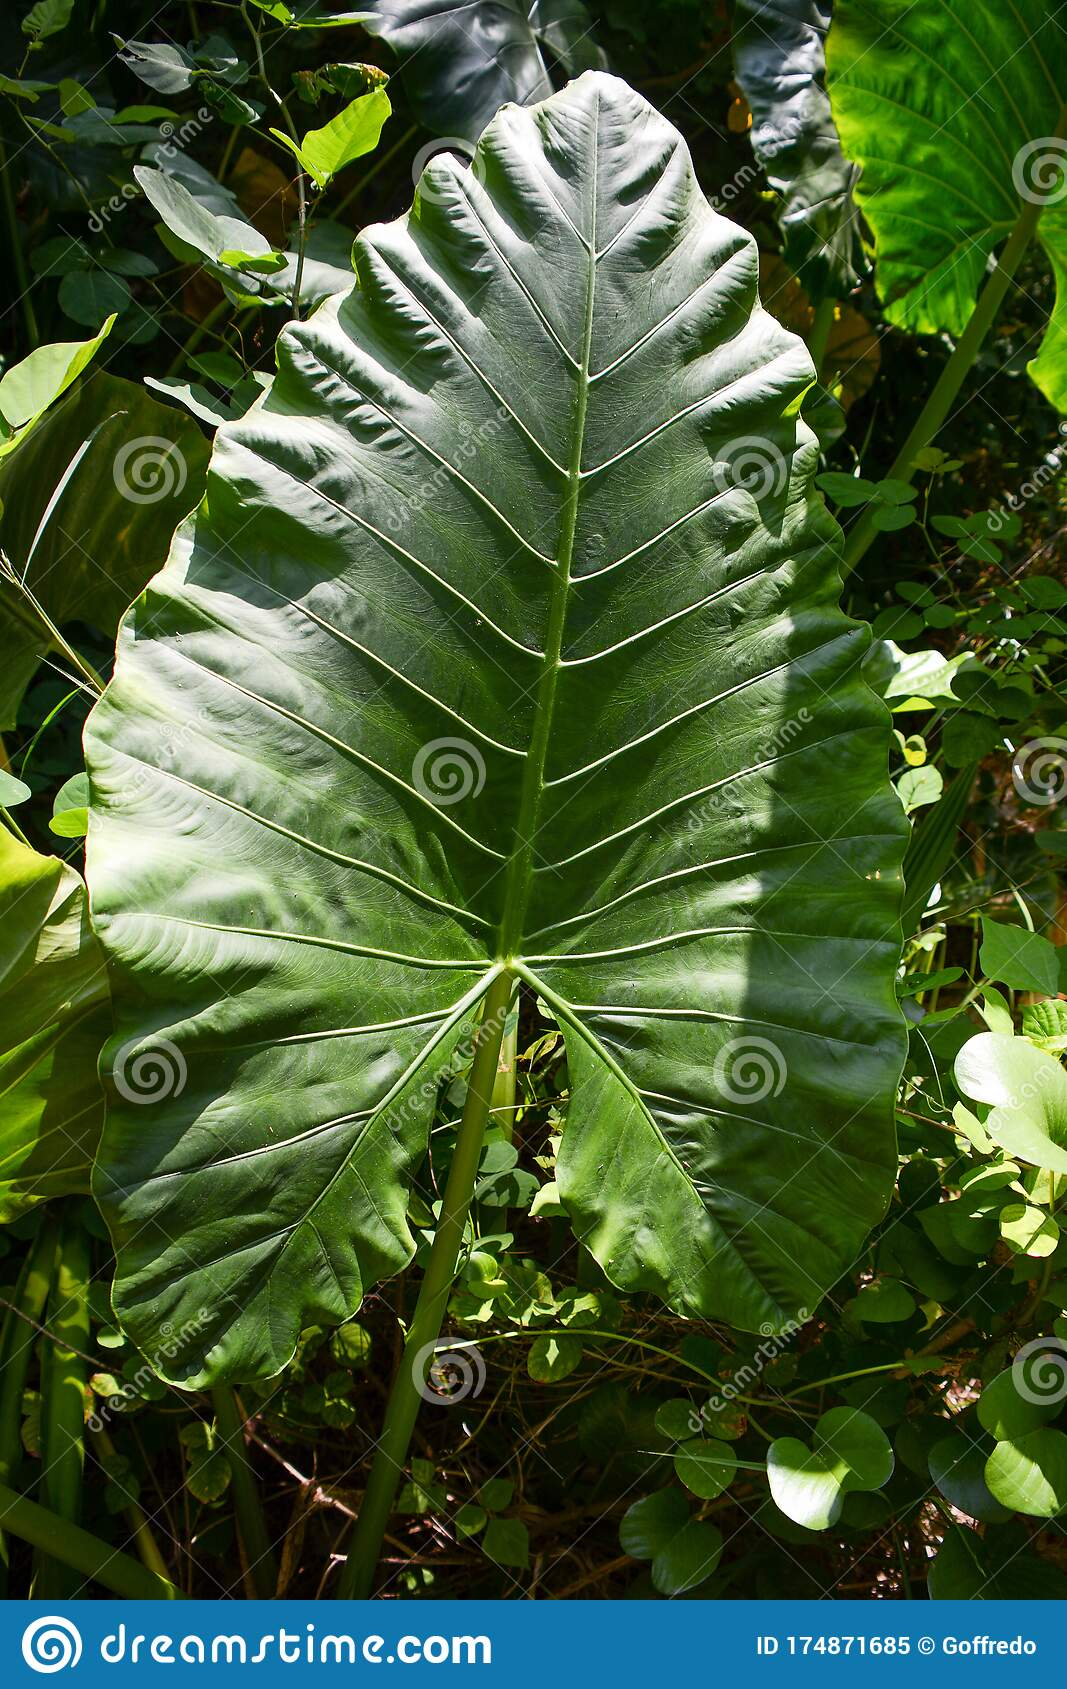 Tropical Leaf Stock Image Image Of Nature Palmata 174871685 Therefore, only a rough estimate can be given of the total number of species contained in these ecosystems. https www dreamstime com tropical leaf types wild leaves island image174871685